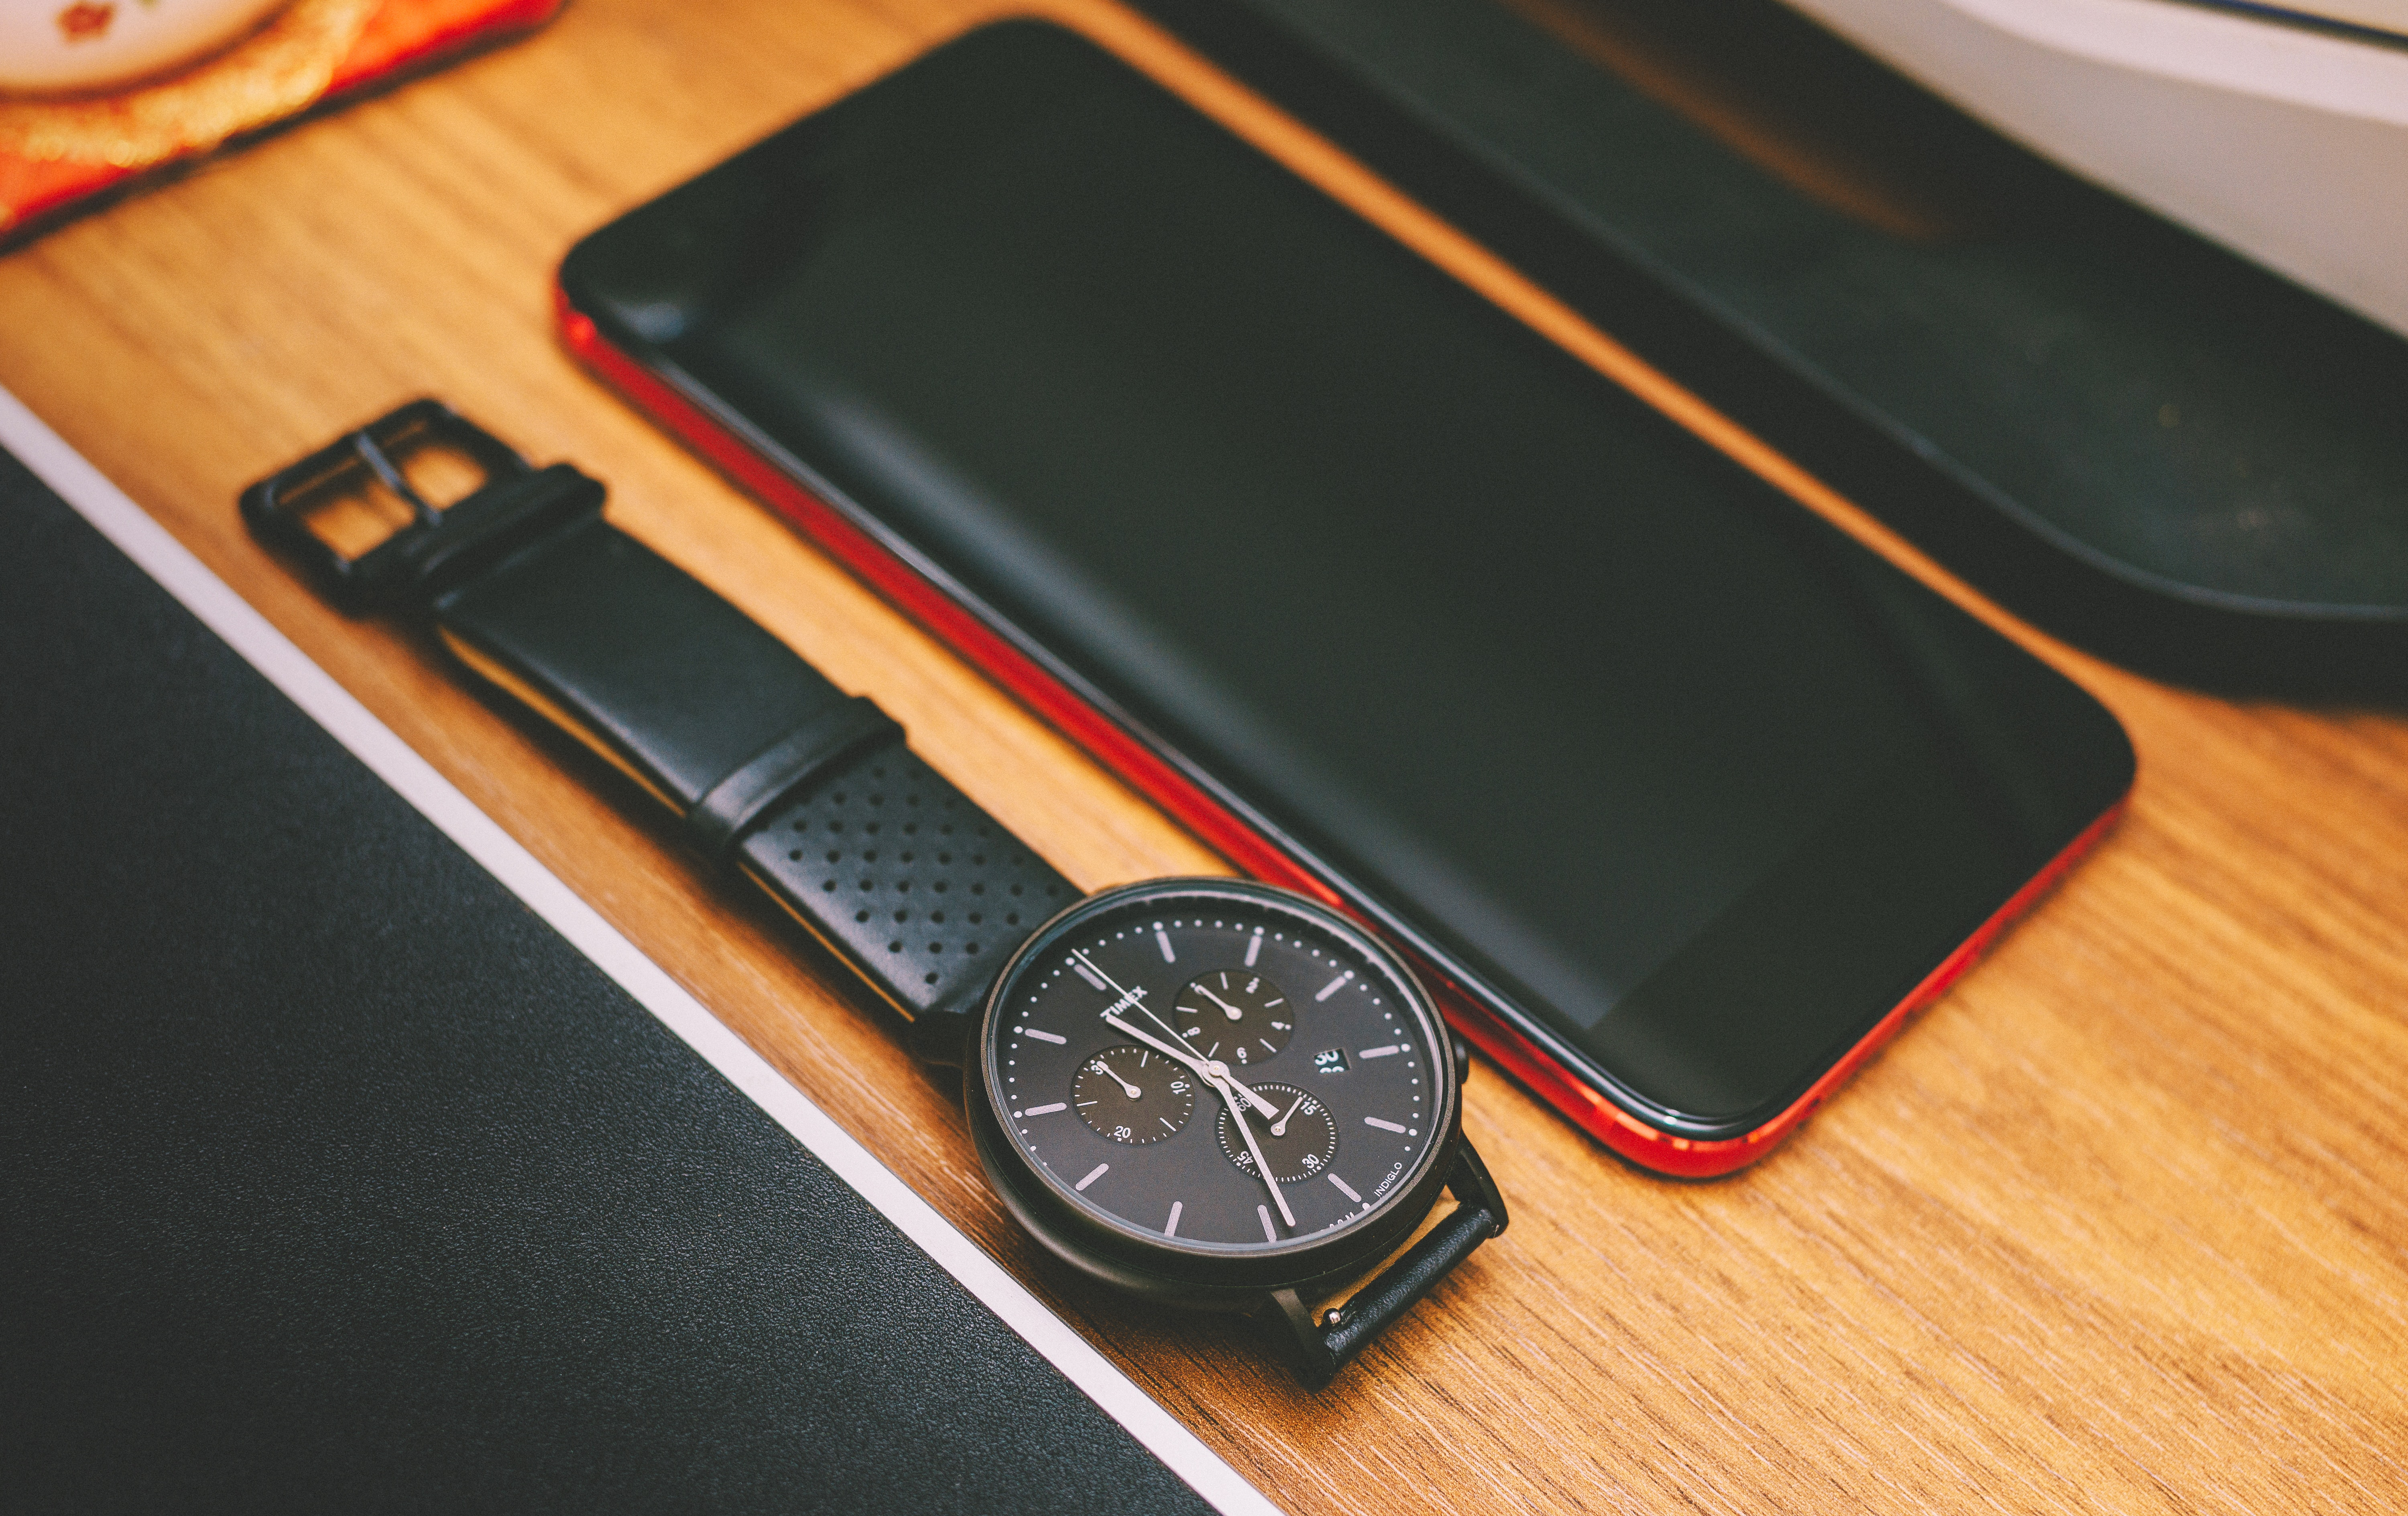 Red smartphone beside the black chronograph watch on brown wooden board photo